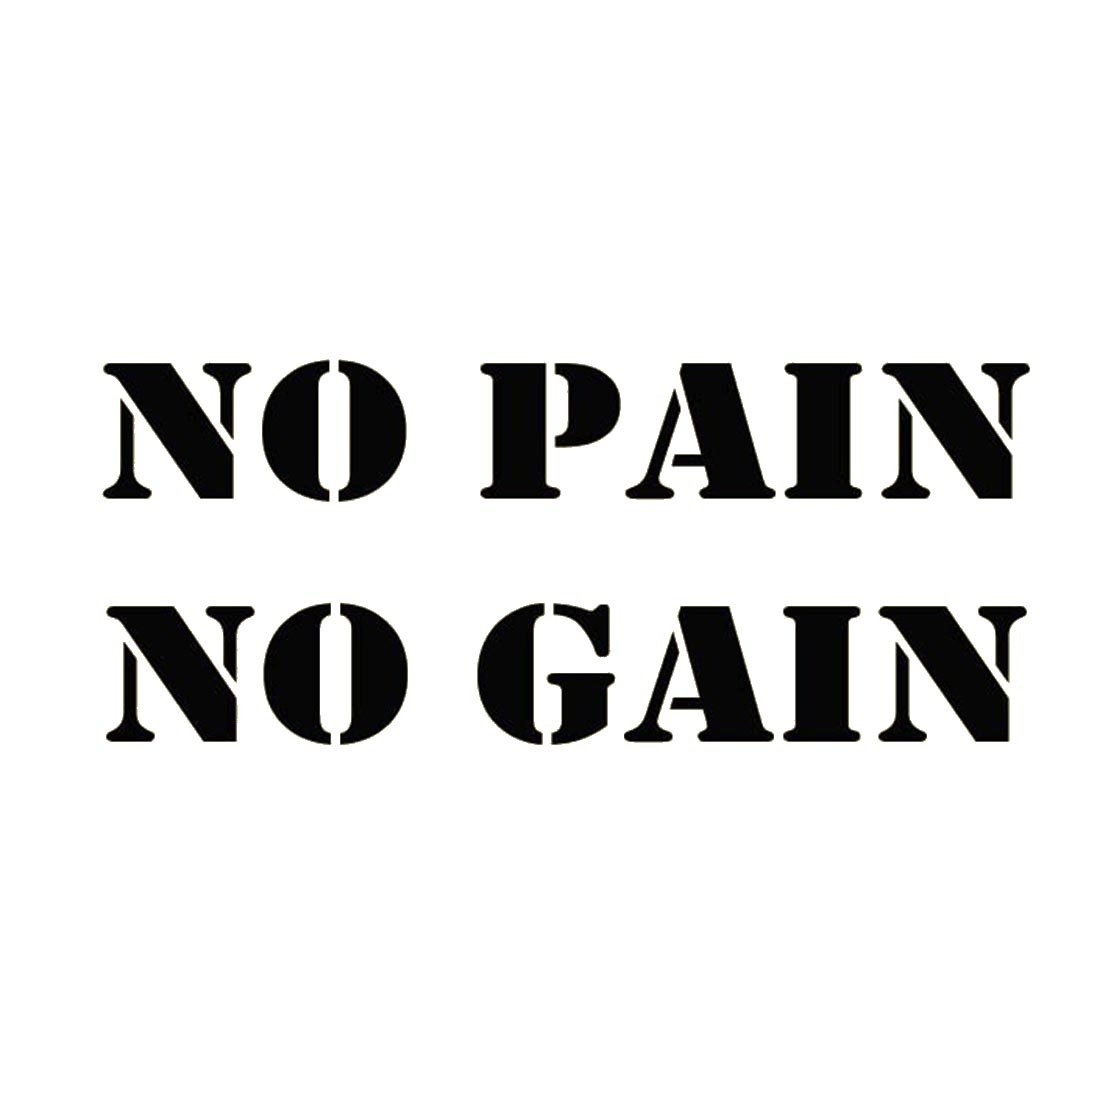 No Pain Gain Exercise Workout Gym Health And Fitness Vinyl Lettering Wall Art Quotes Decal Amazoncouk Kitchen Home